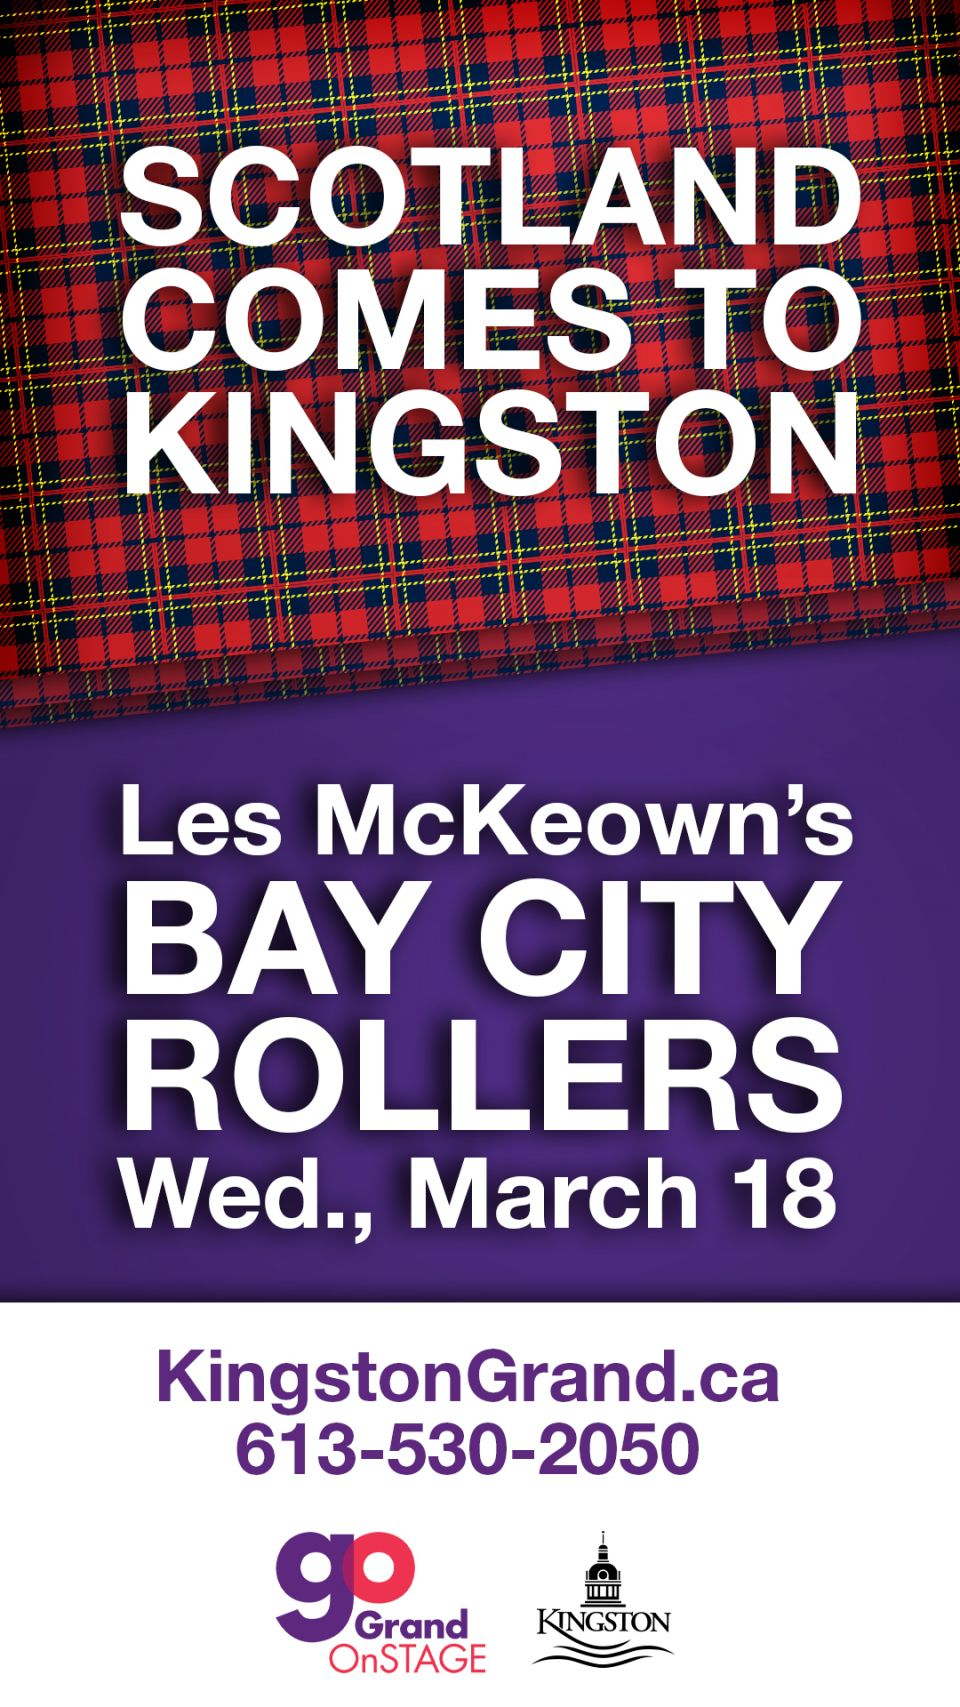 Scotland comes to Kingston / Bay City Rollers